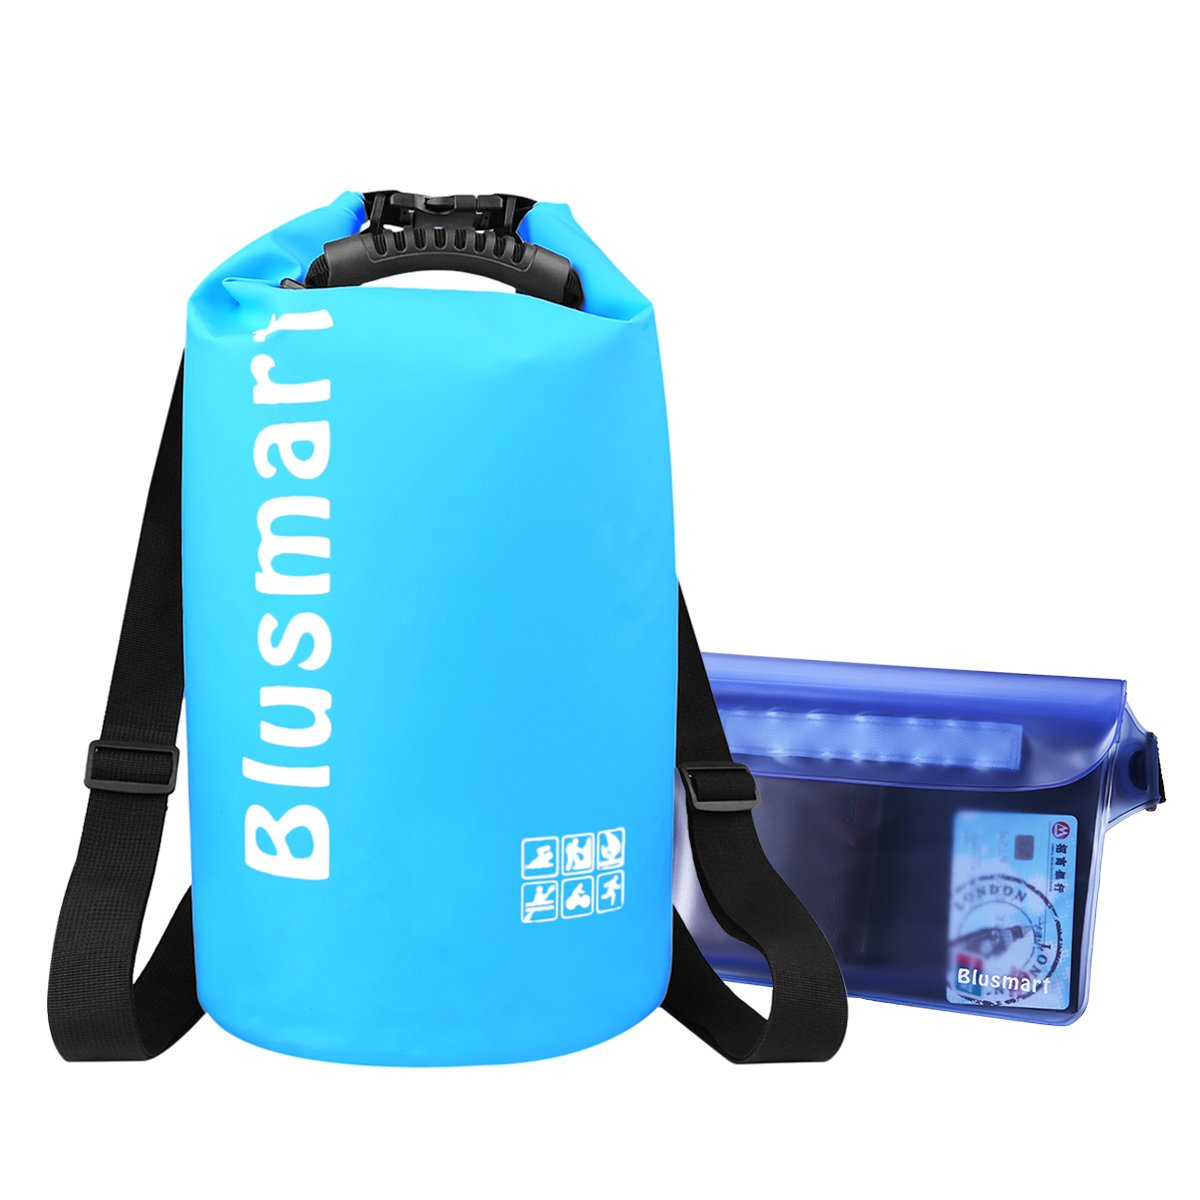 Amazon.com : Blusmart 10L/20L Waterproof Dry Bags We use this dry bag for things we don't want getting wet when we're out on the water.